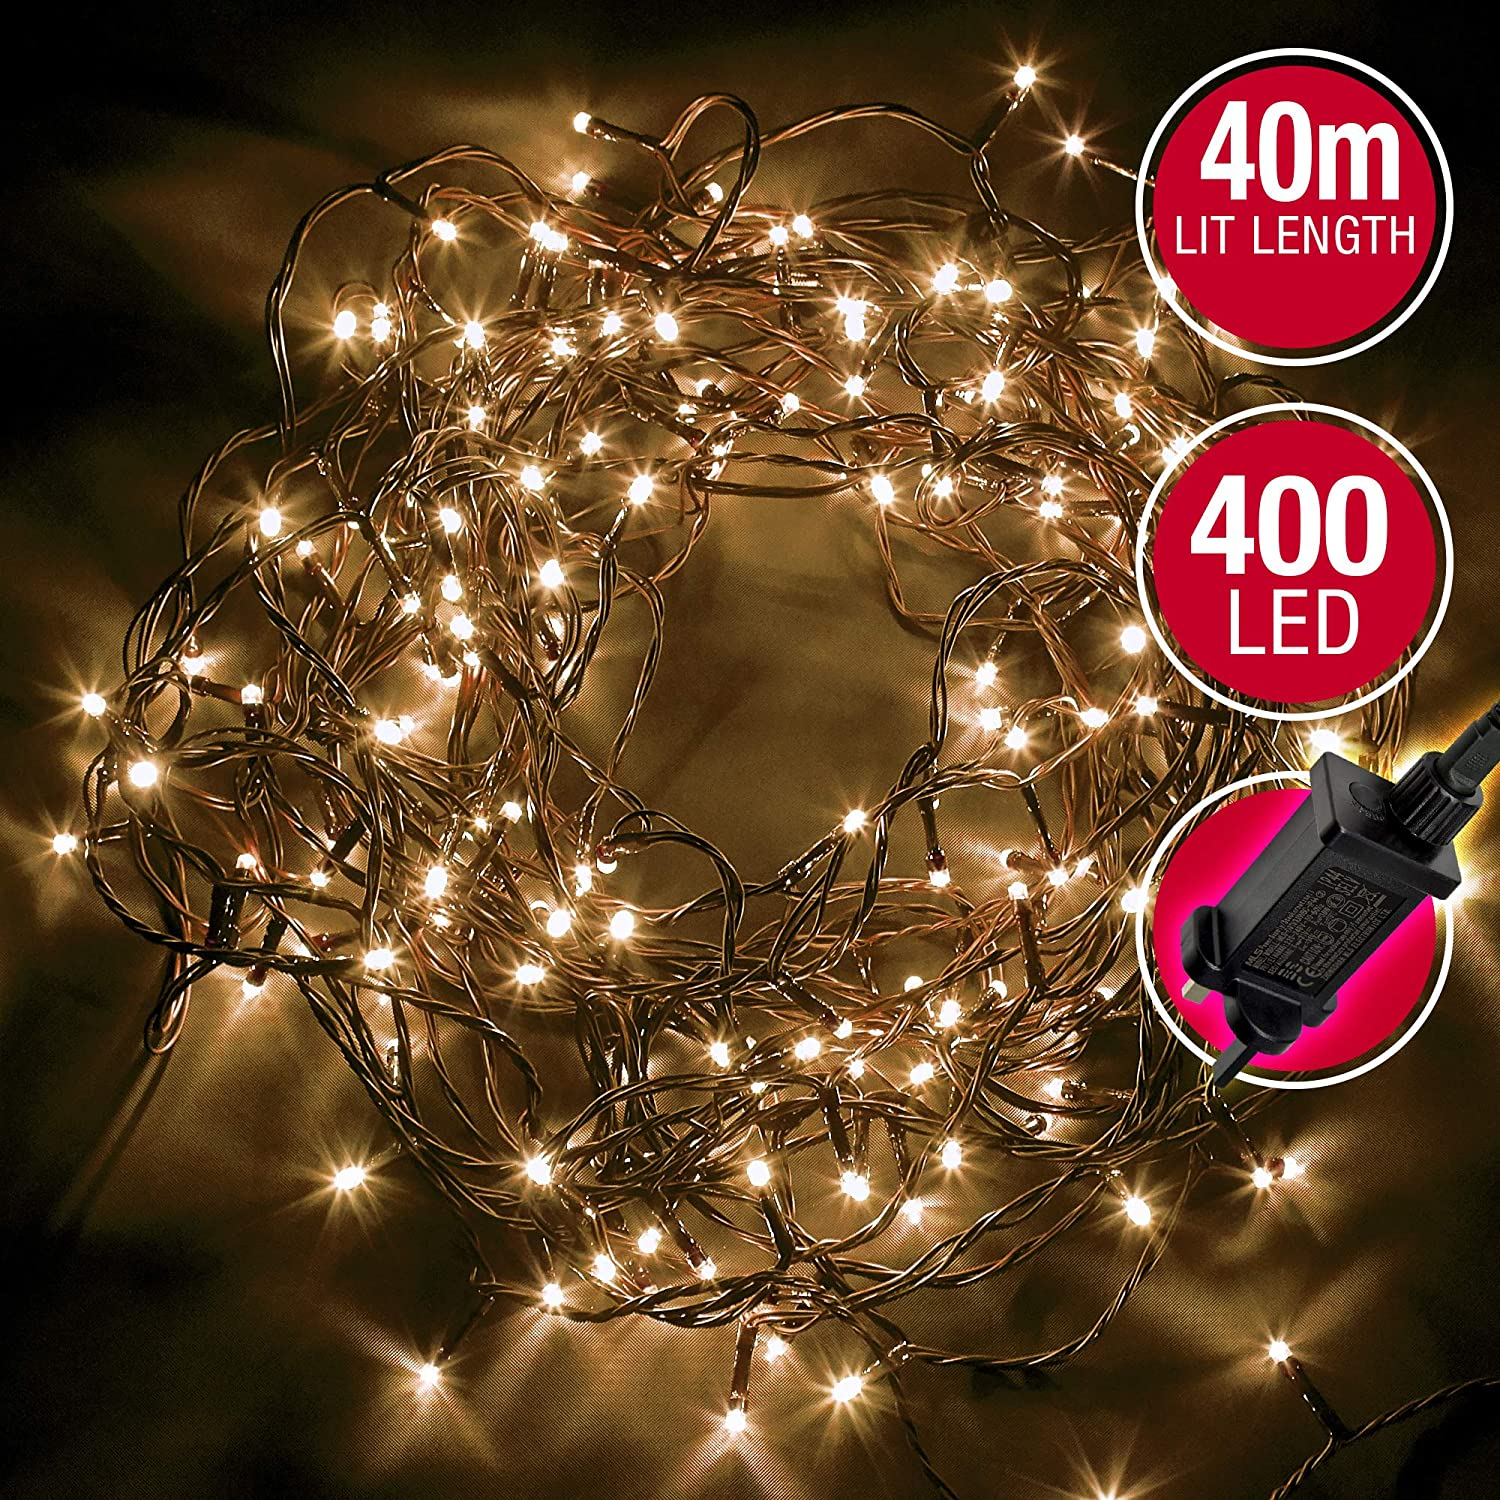 White 400 LED Chaser String Fairy Lights Party Wedding Christmas Outdoor Decor